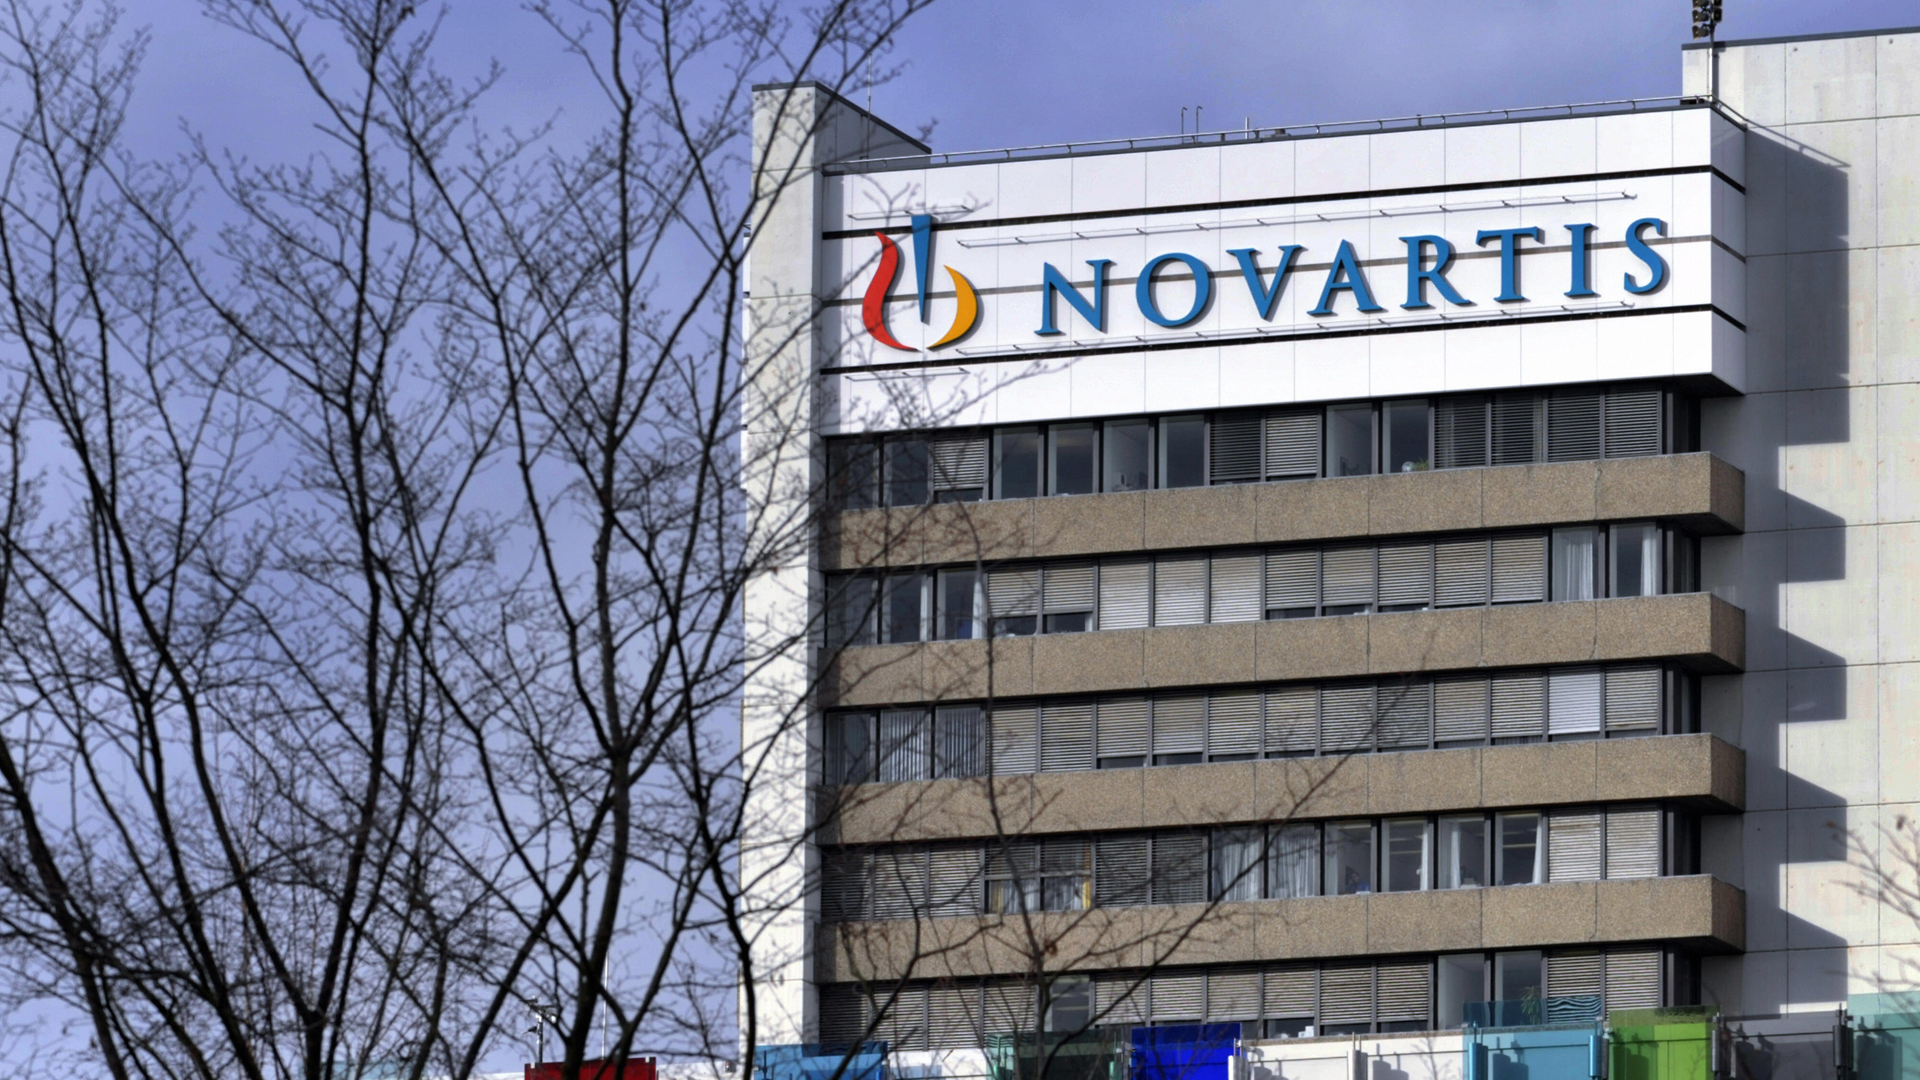 Swiss drugs giant Novartis headquarters are seen in January 17, 2008, in Basel Switzerland. (Credit: FABRICE COFFRINI/AFP/Getty Images)